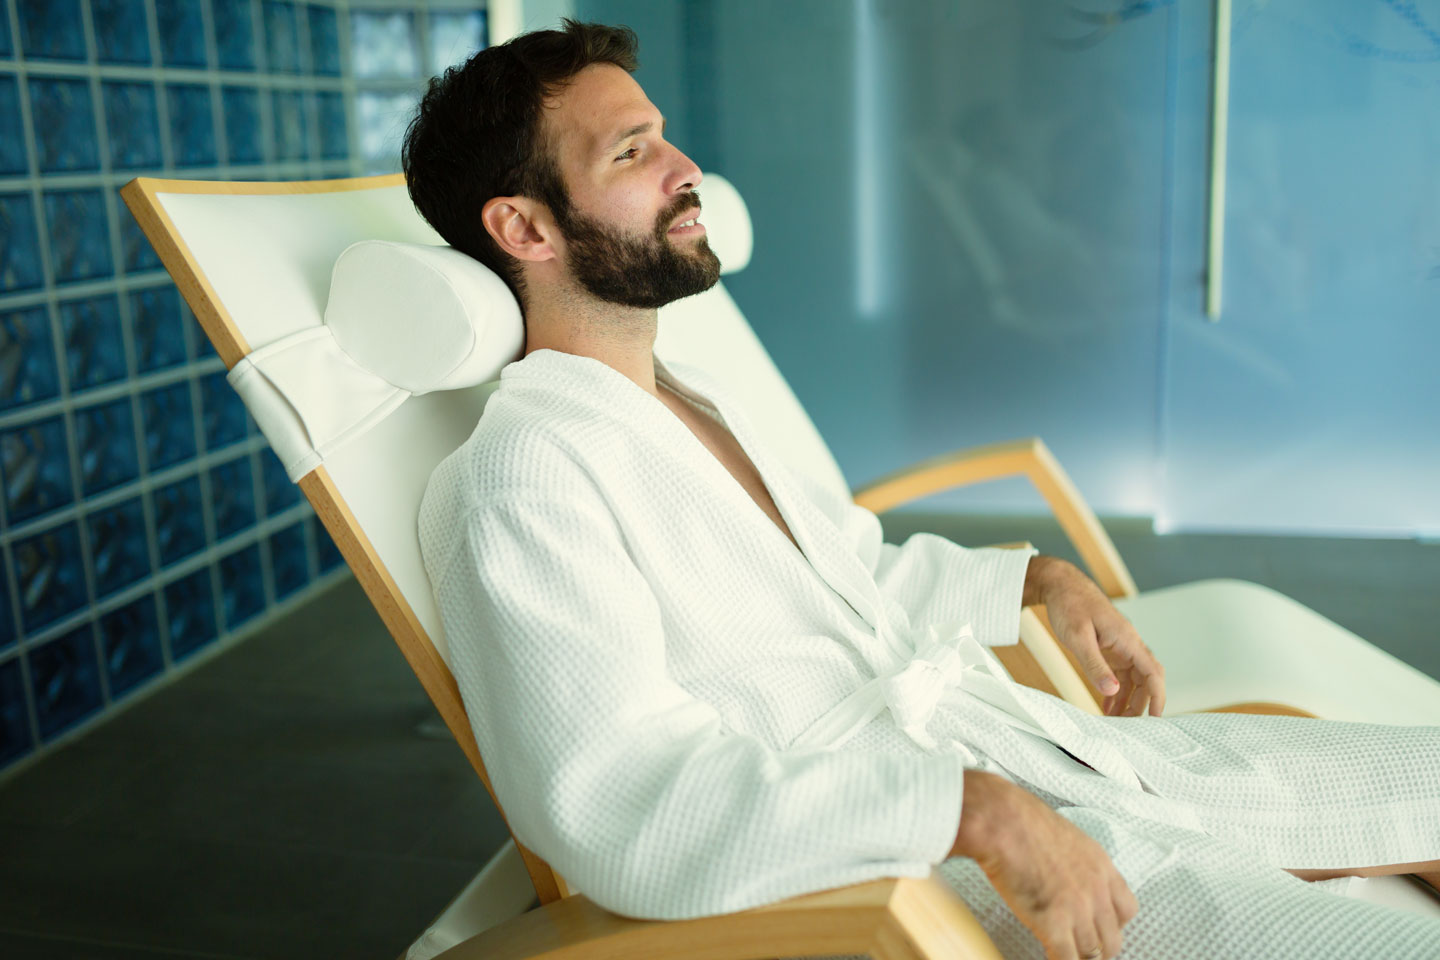 man-in-spa